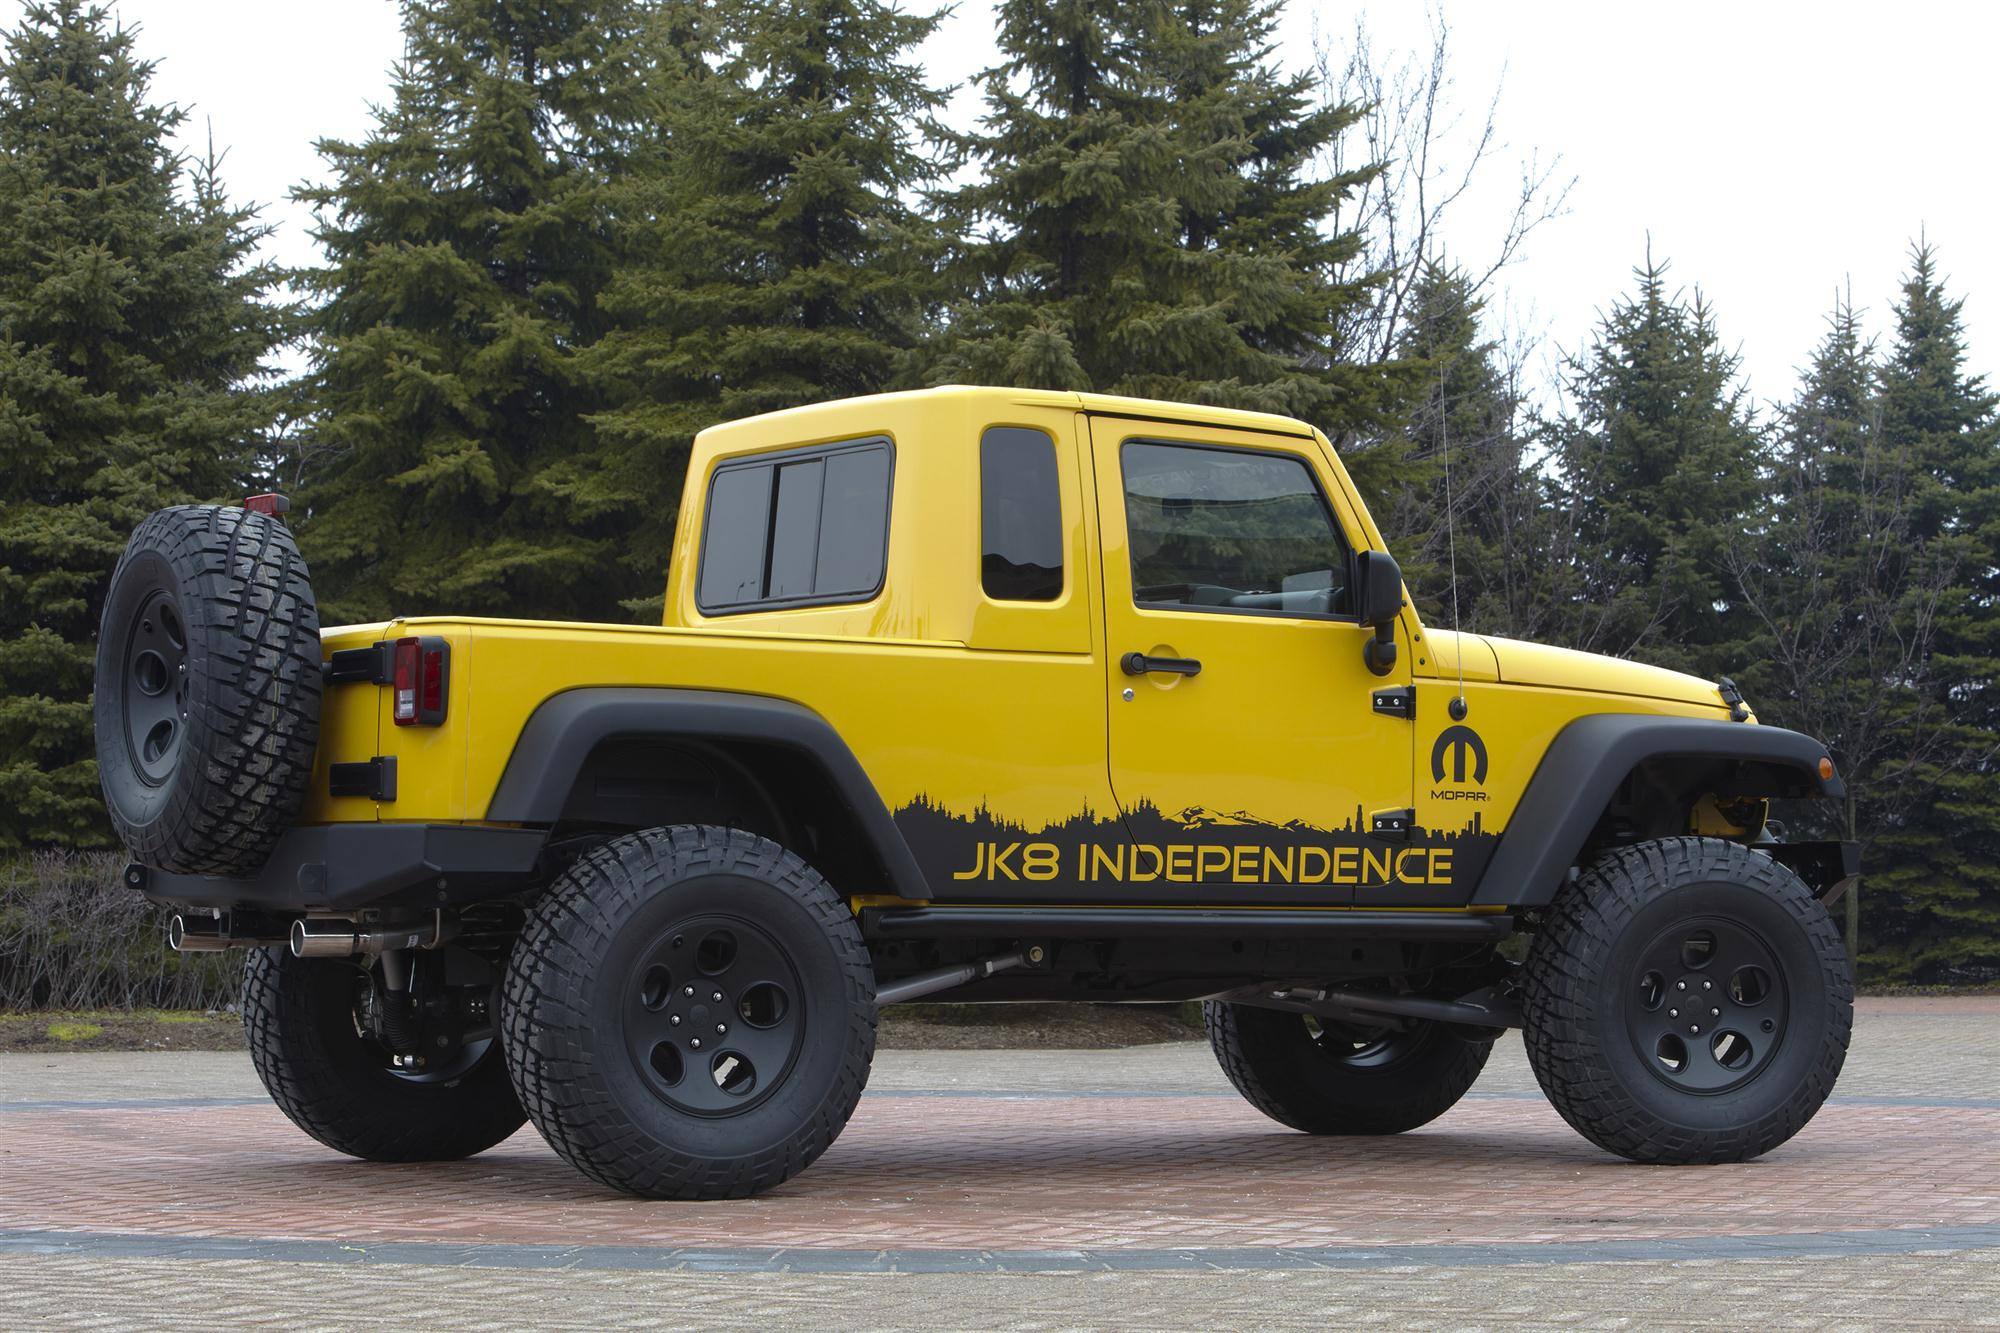 Jeep Jk 8 >> Jeep Wrangler Unlimited Jk 8 Pickup Conversion Package Priced At 5 499